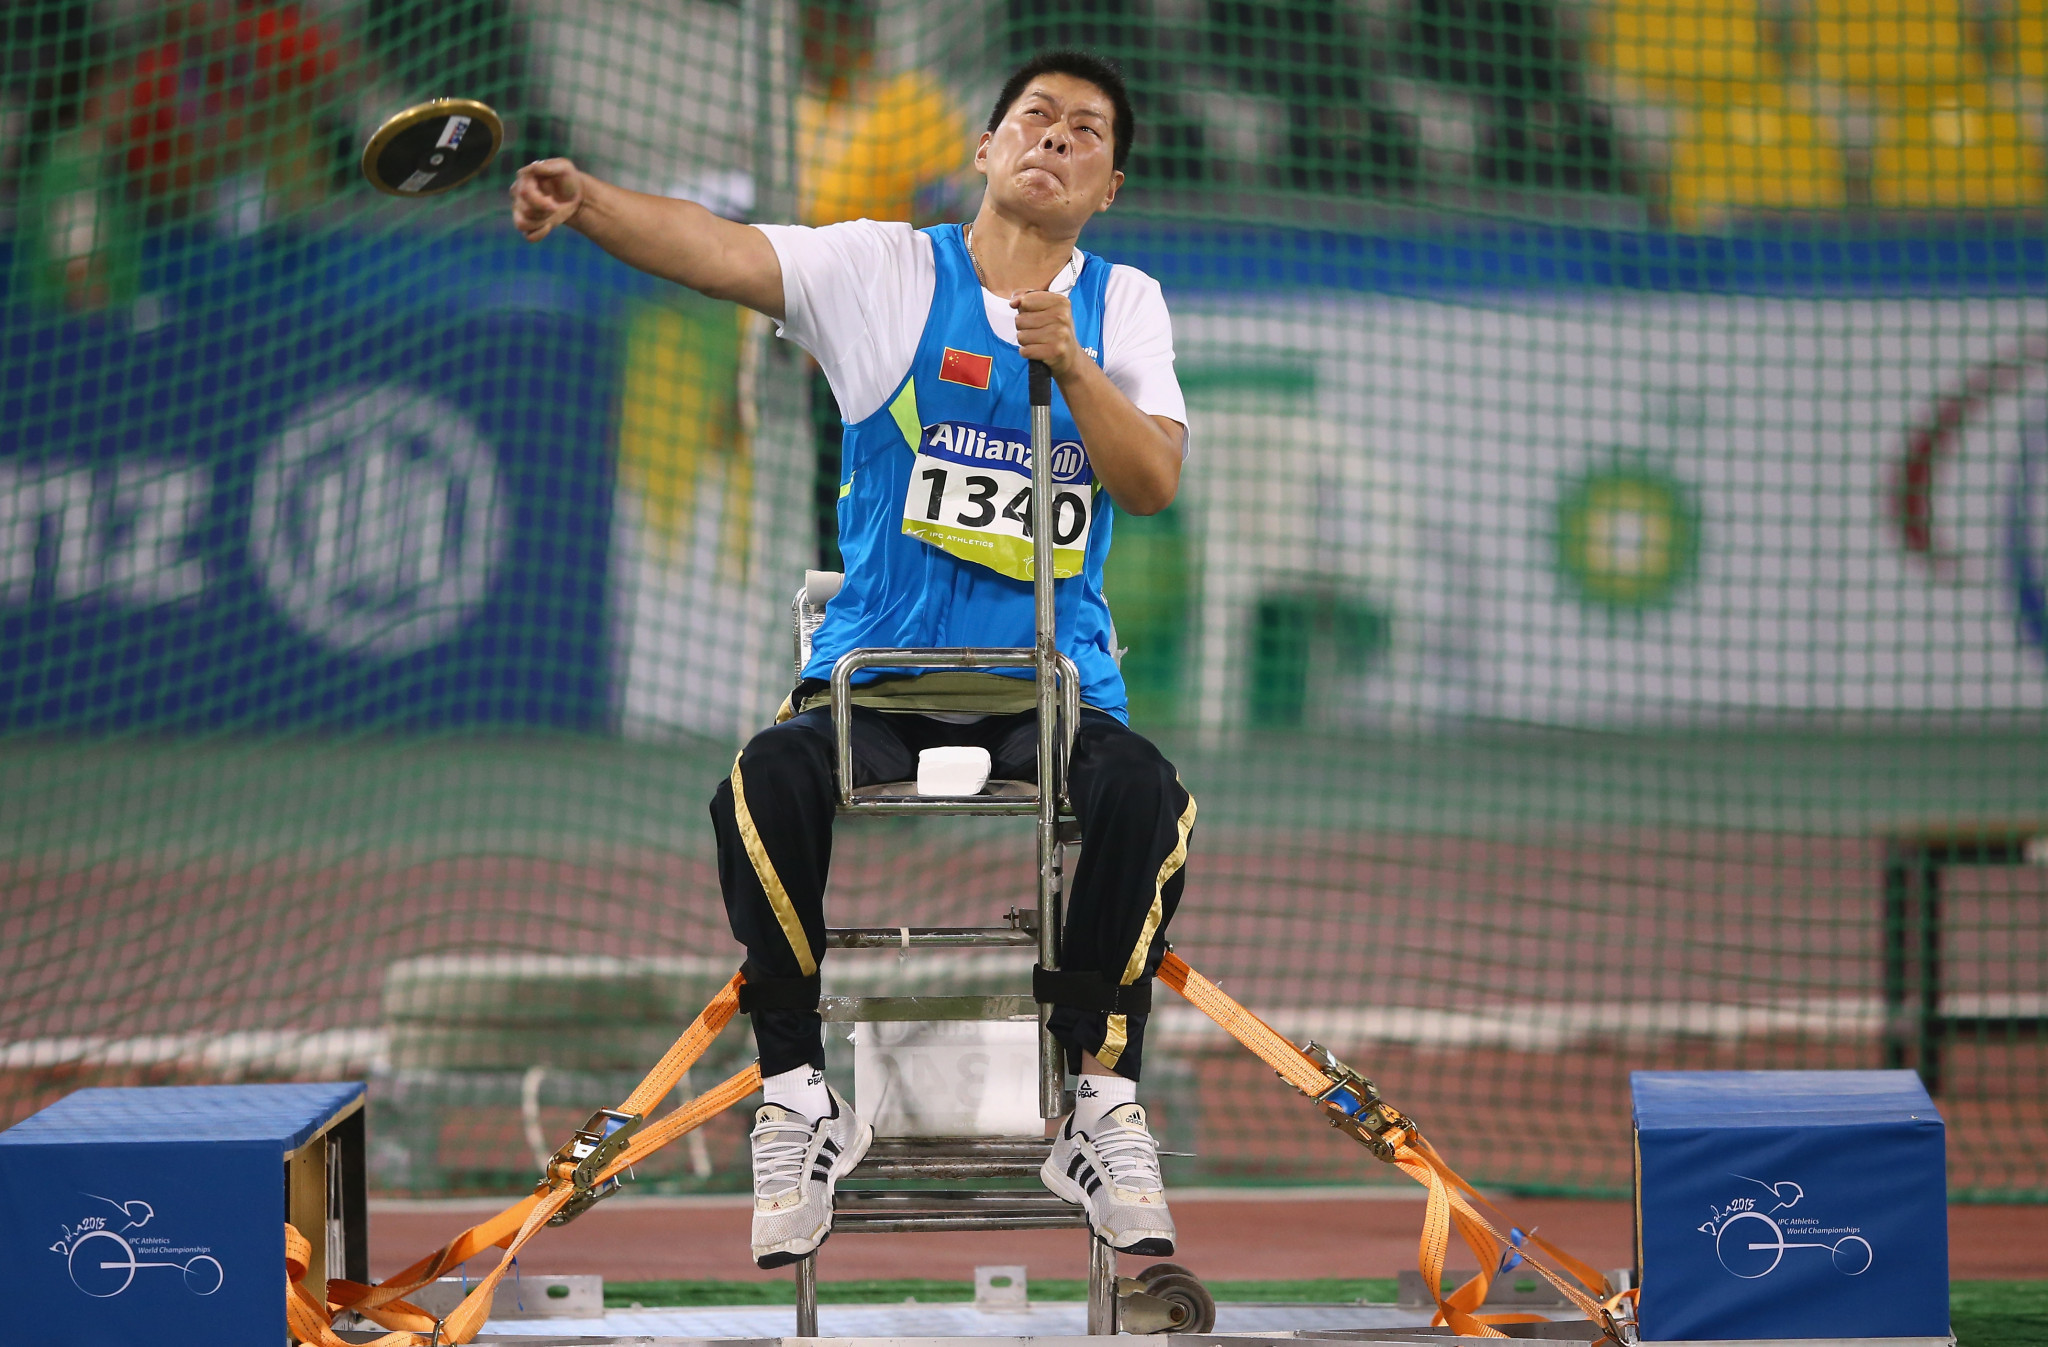 Liwan wins gold medals in two different disciplines on second day of World Para Athletics Grand Prix in Beijing